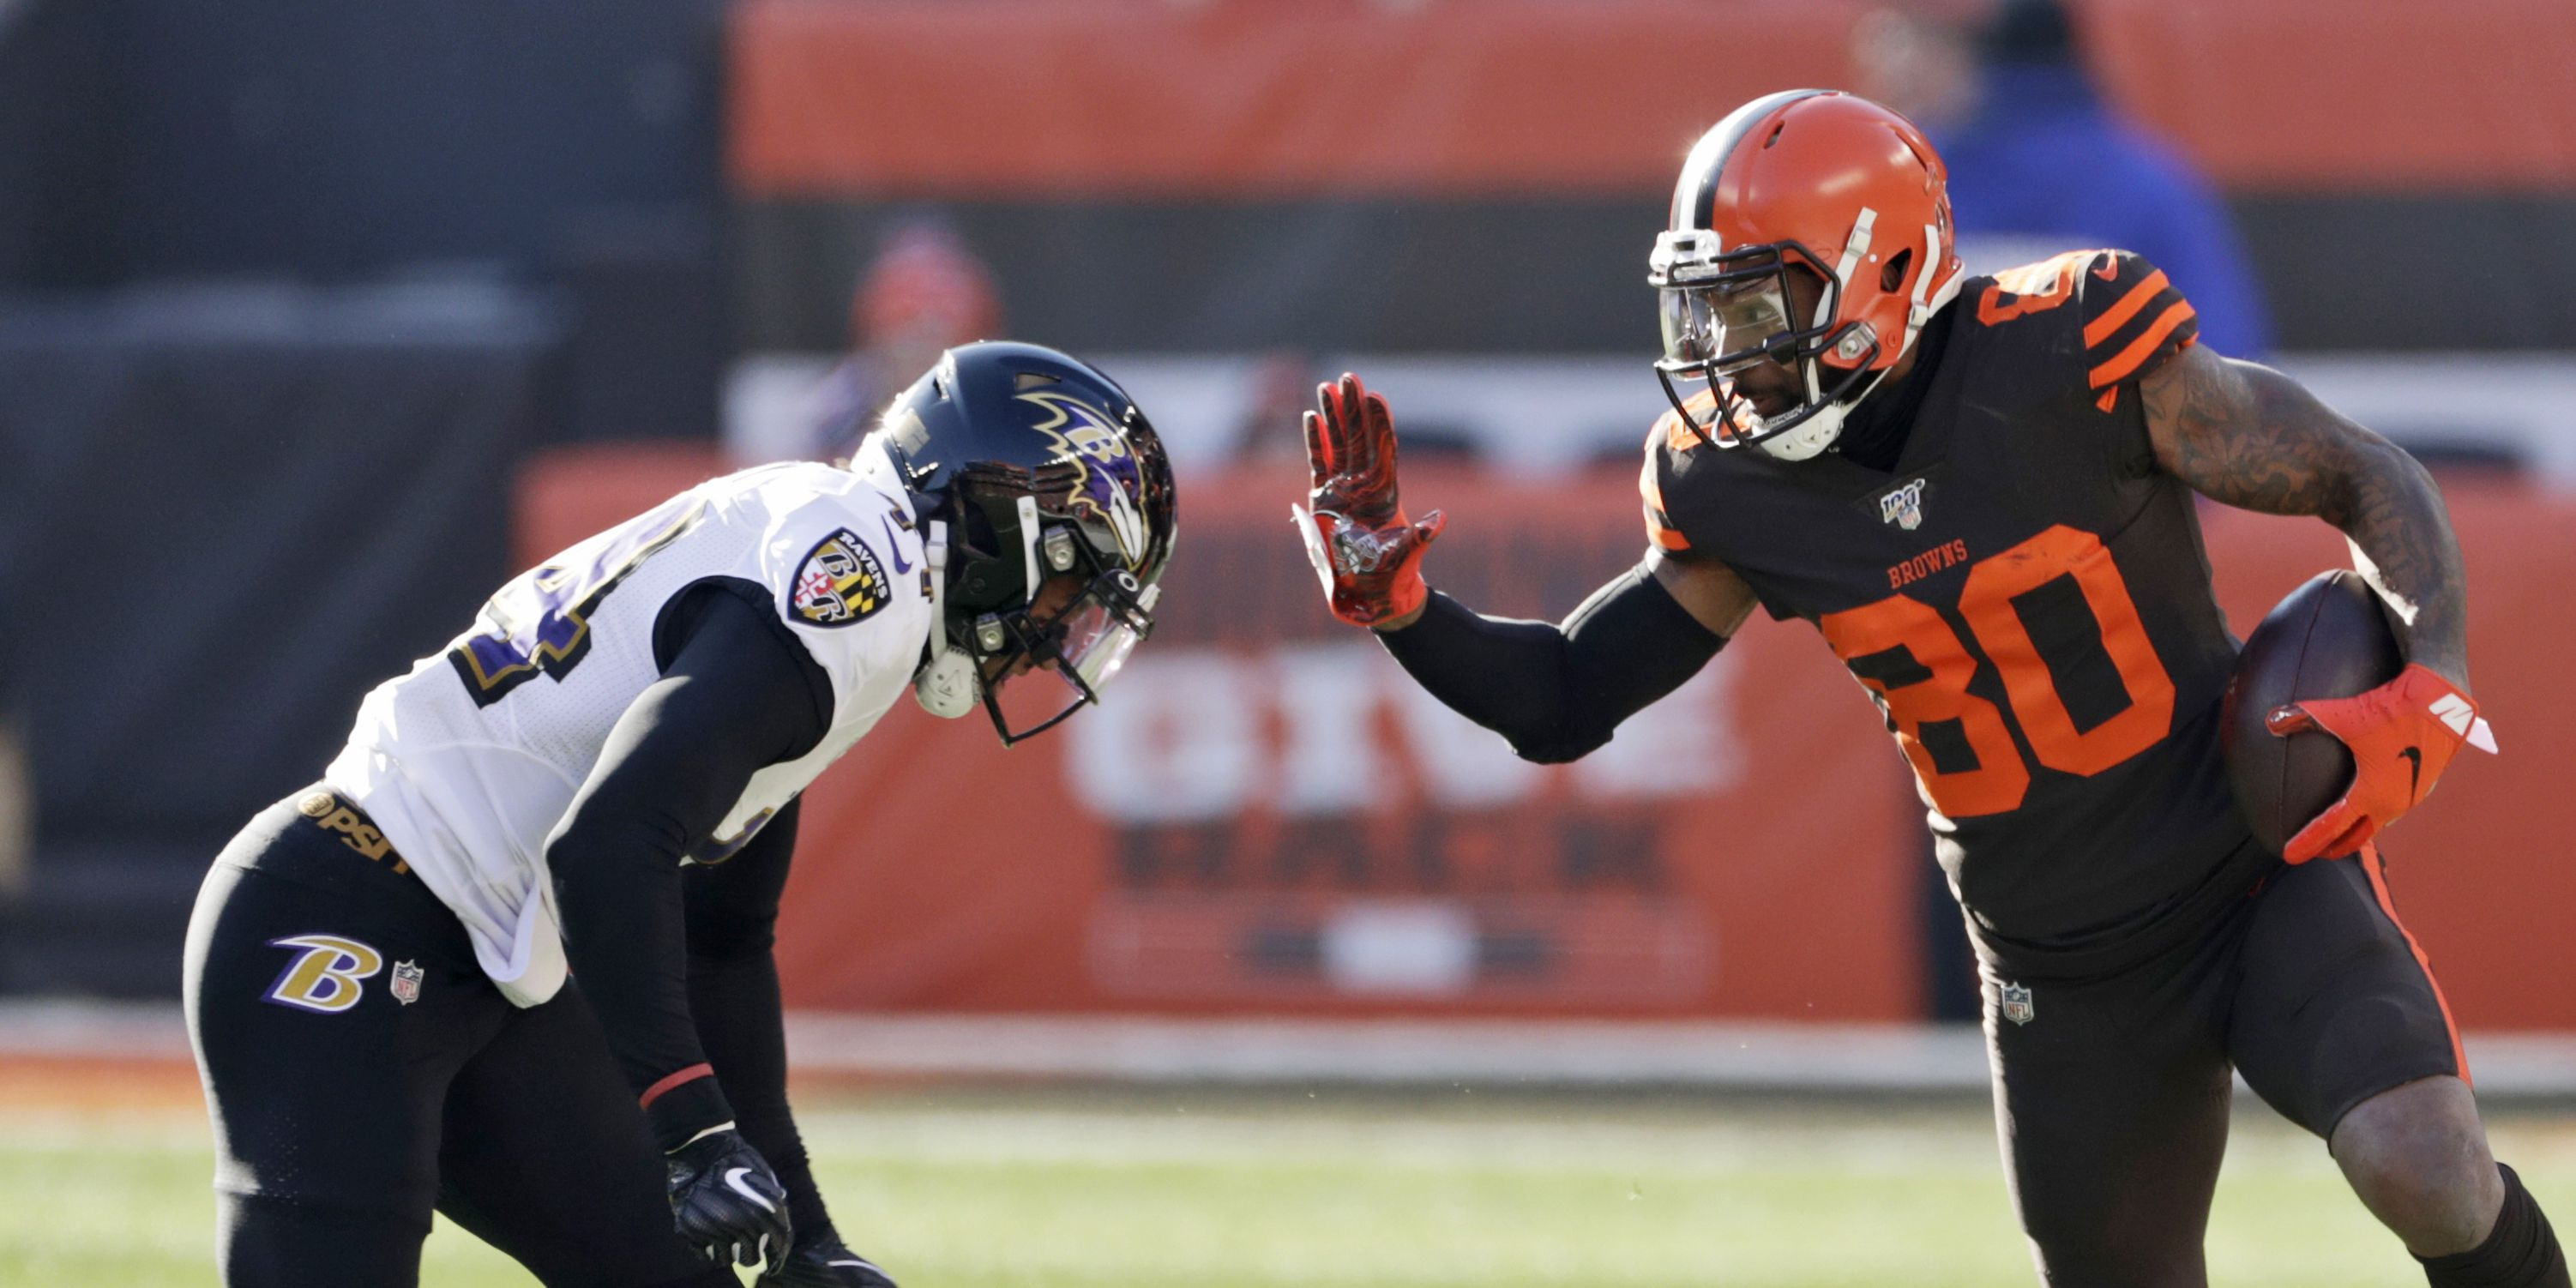 Browns 2020 schedule released! Cleveland will face Baltimore in season opener